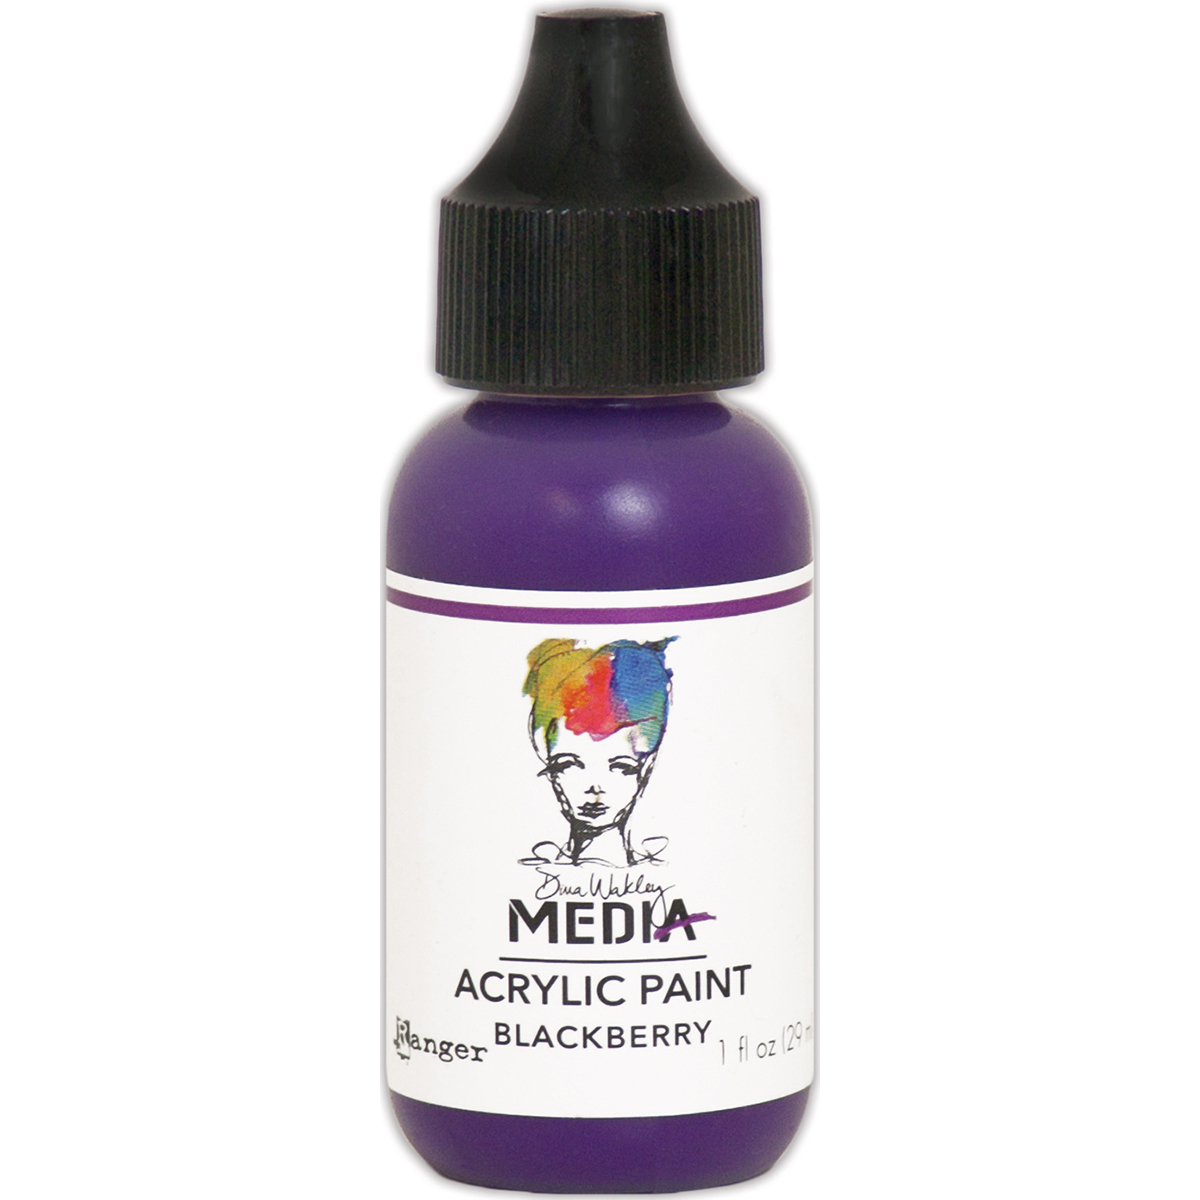 Dina Wakley Media Acrylic Paint 1oz-Blackberry